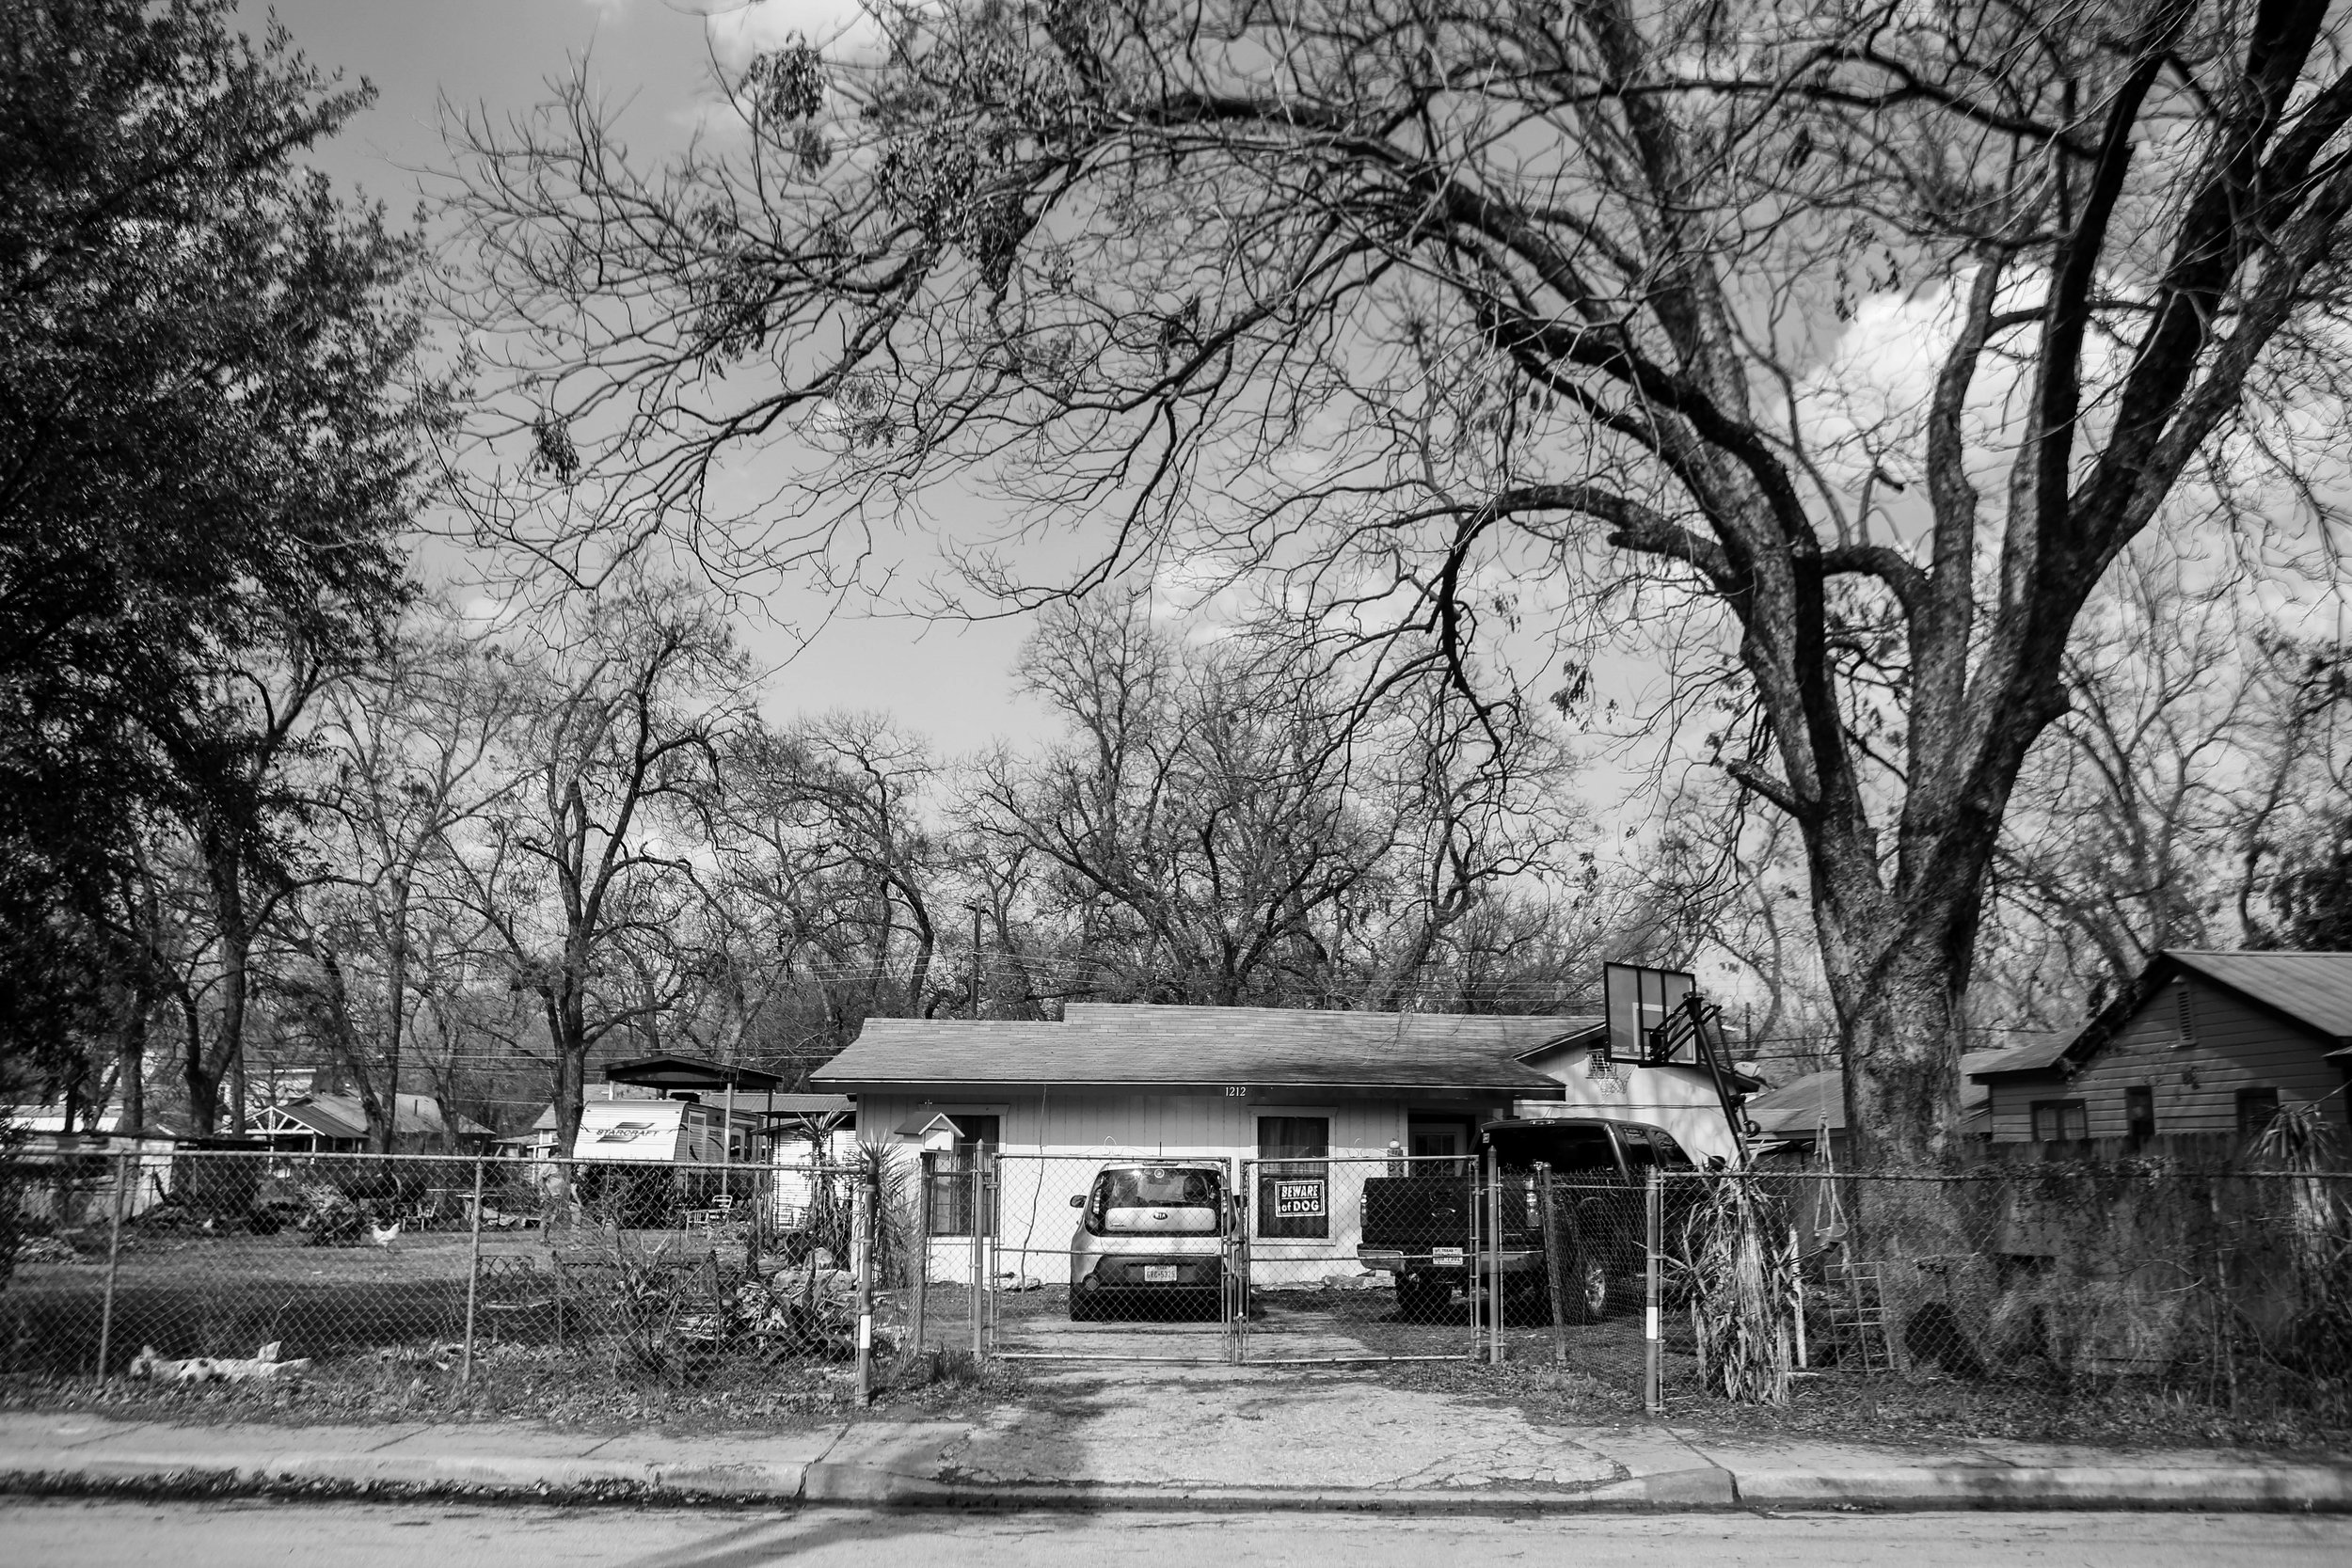 The Cortez household overlooks the neighboring houses and buildings that have since changed in familiarity for East Austin residents such as Jesse Cortez and his family.